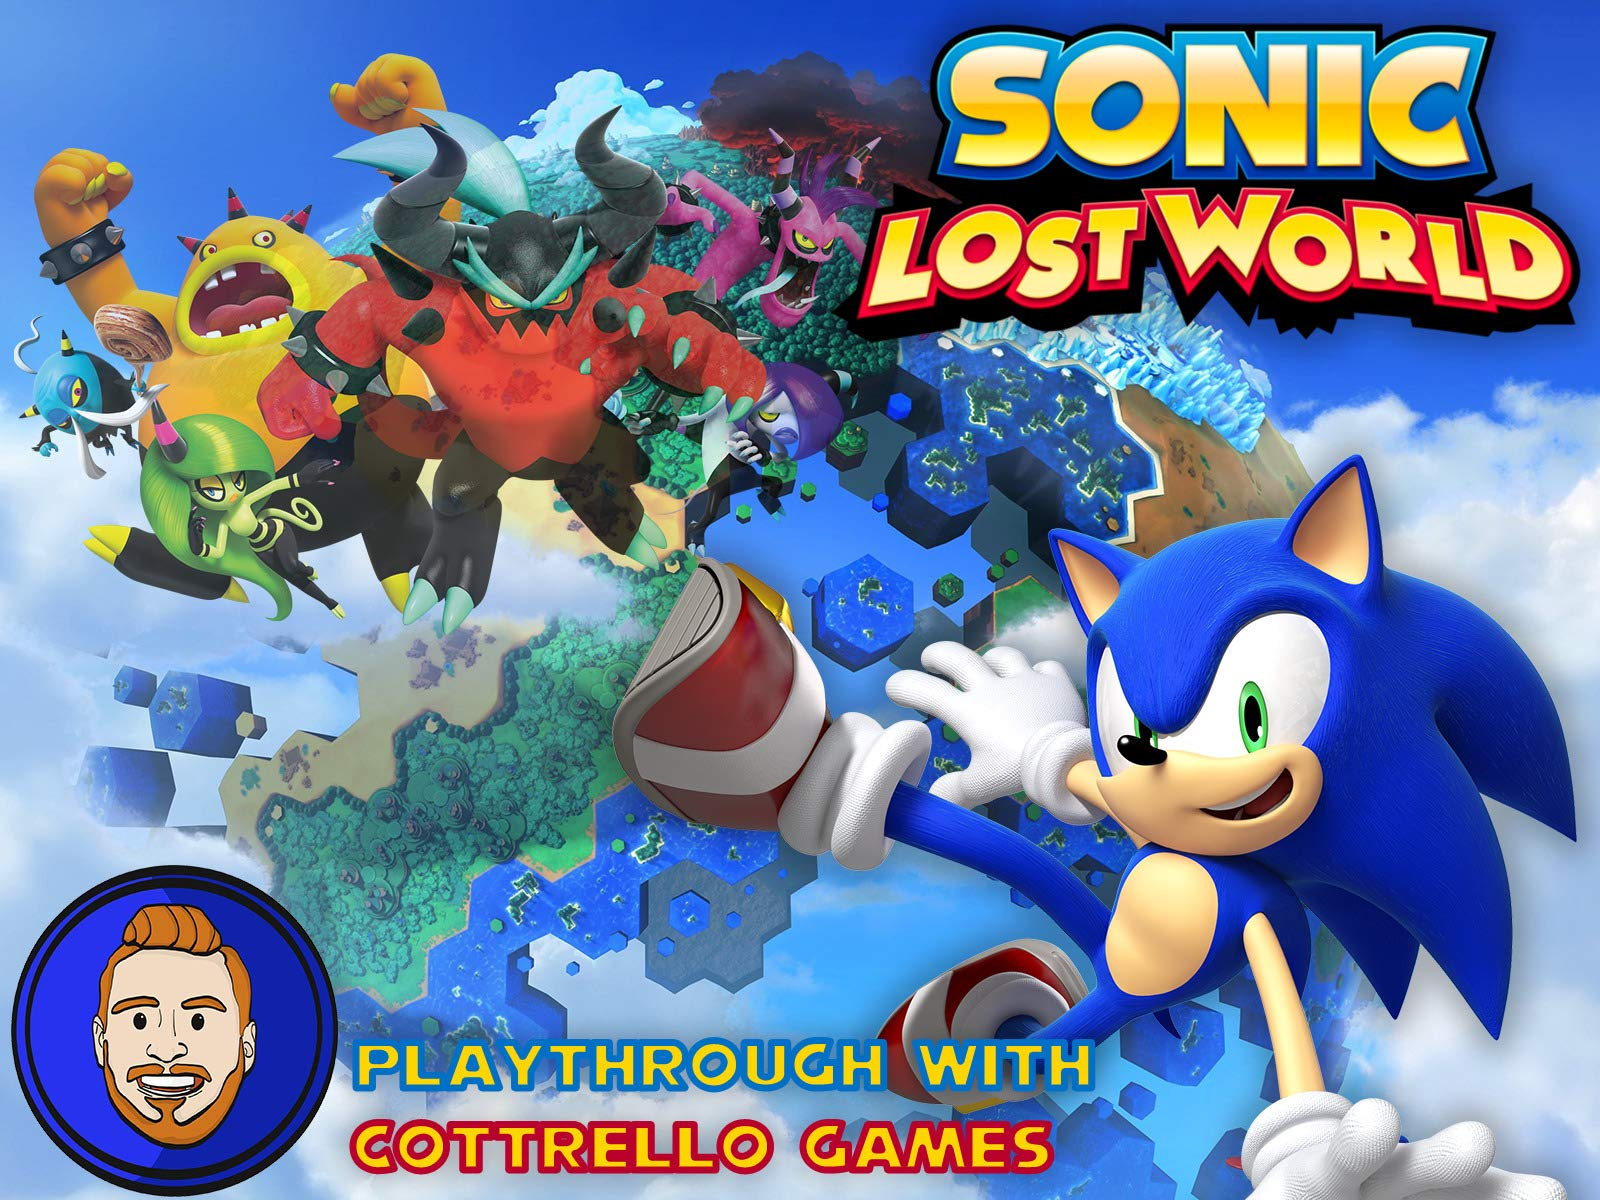 Sonic Lost World Playthrough with Cottrello Games